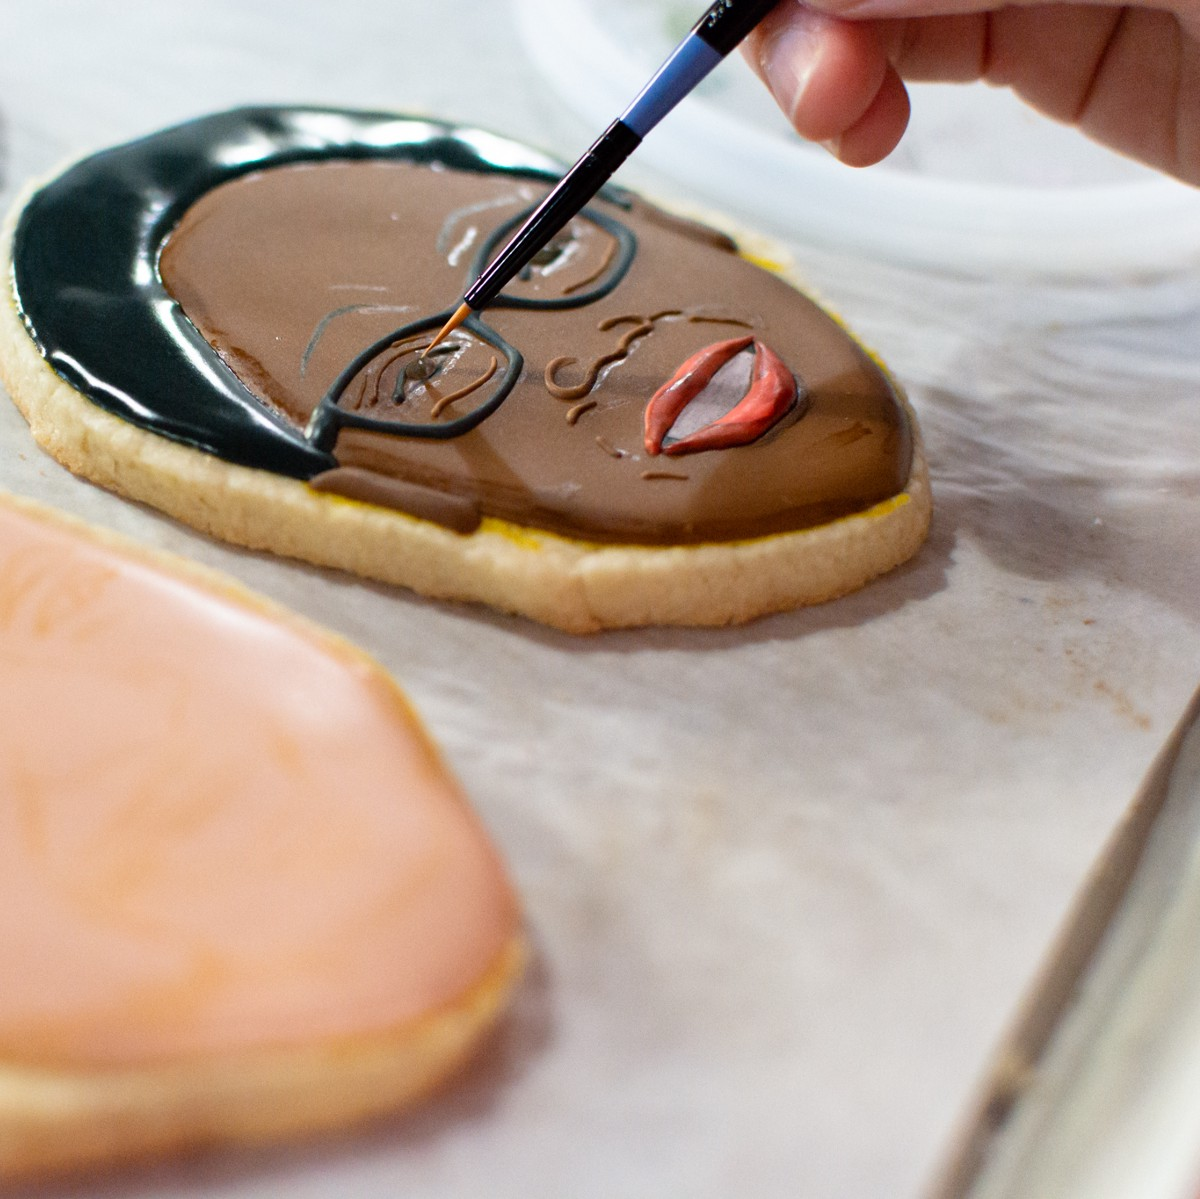 Tracing the History of Asian Americans in Royal Icing